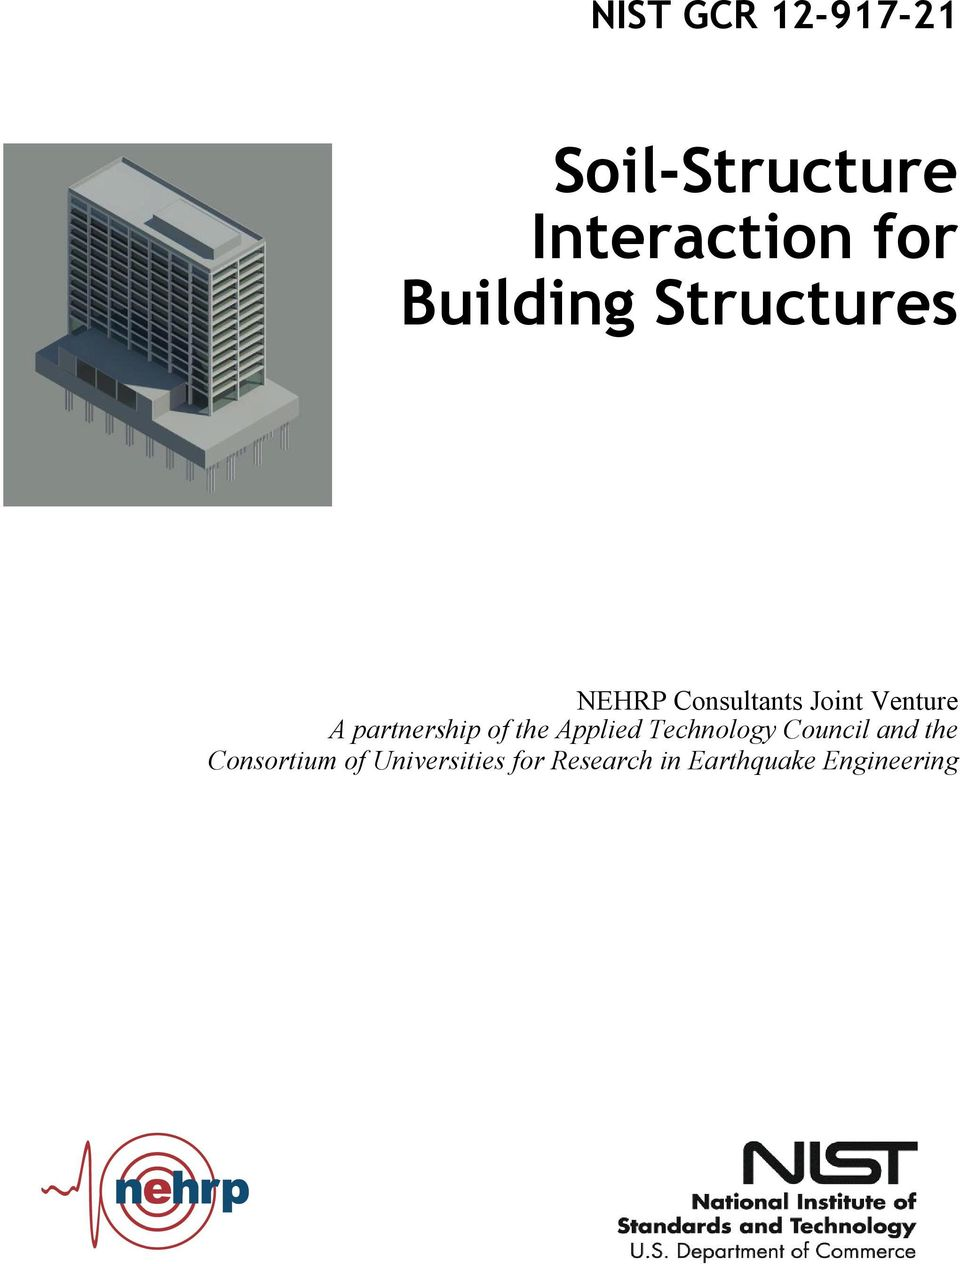 NIST GCR Soil-Structure Interaction for Building Structures